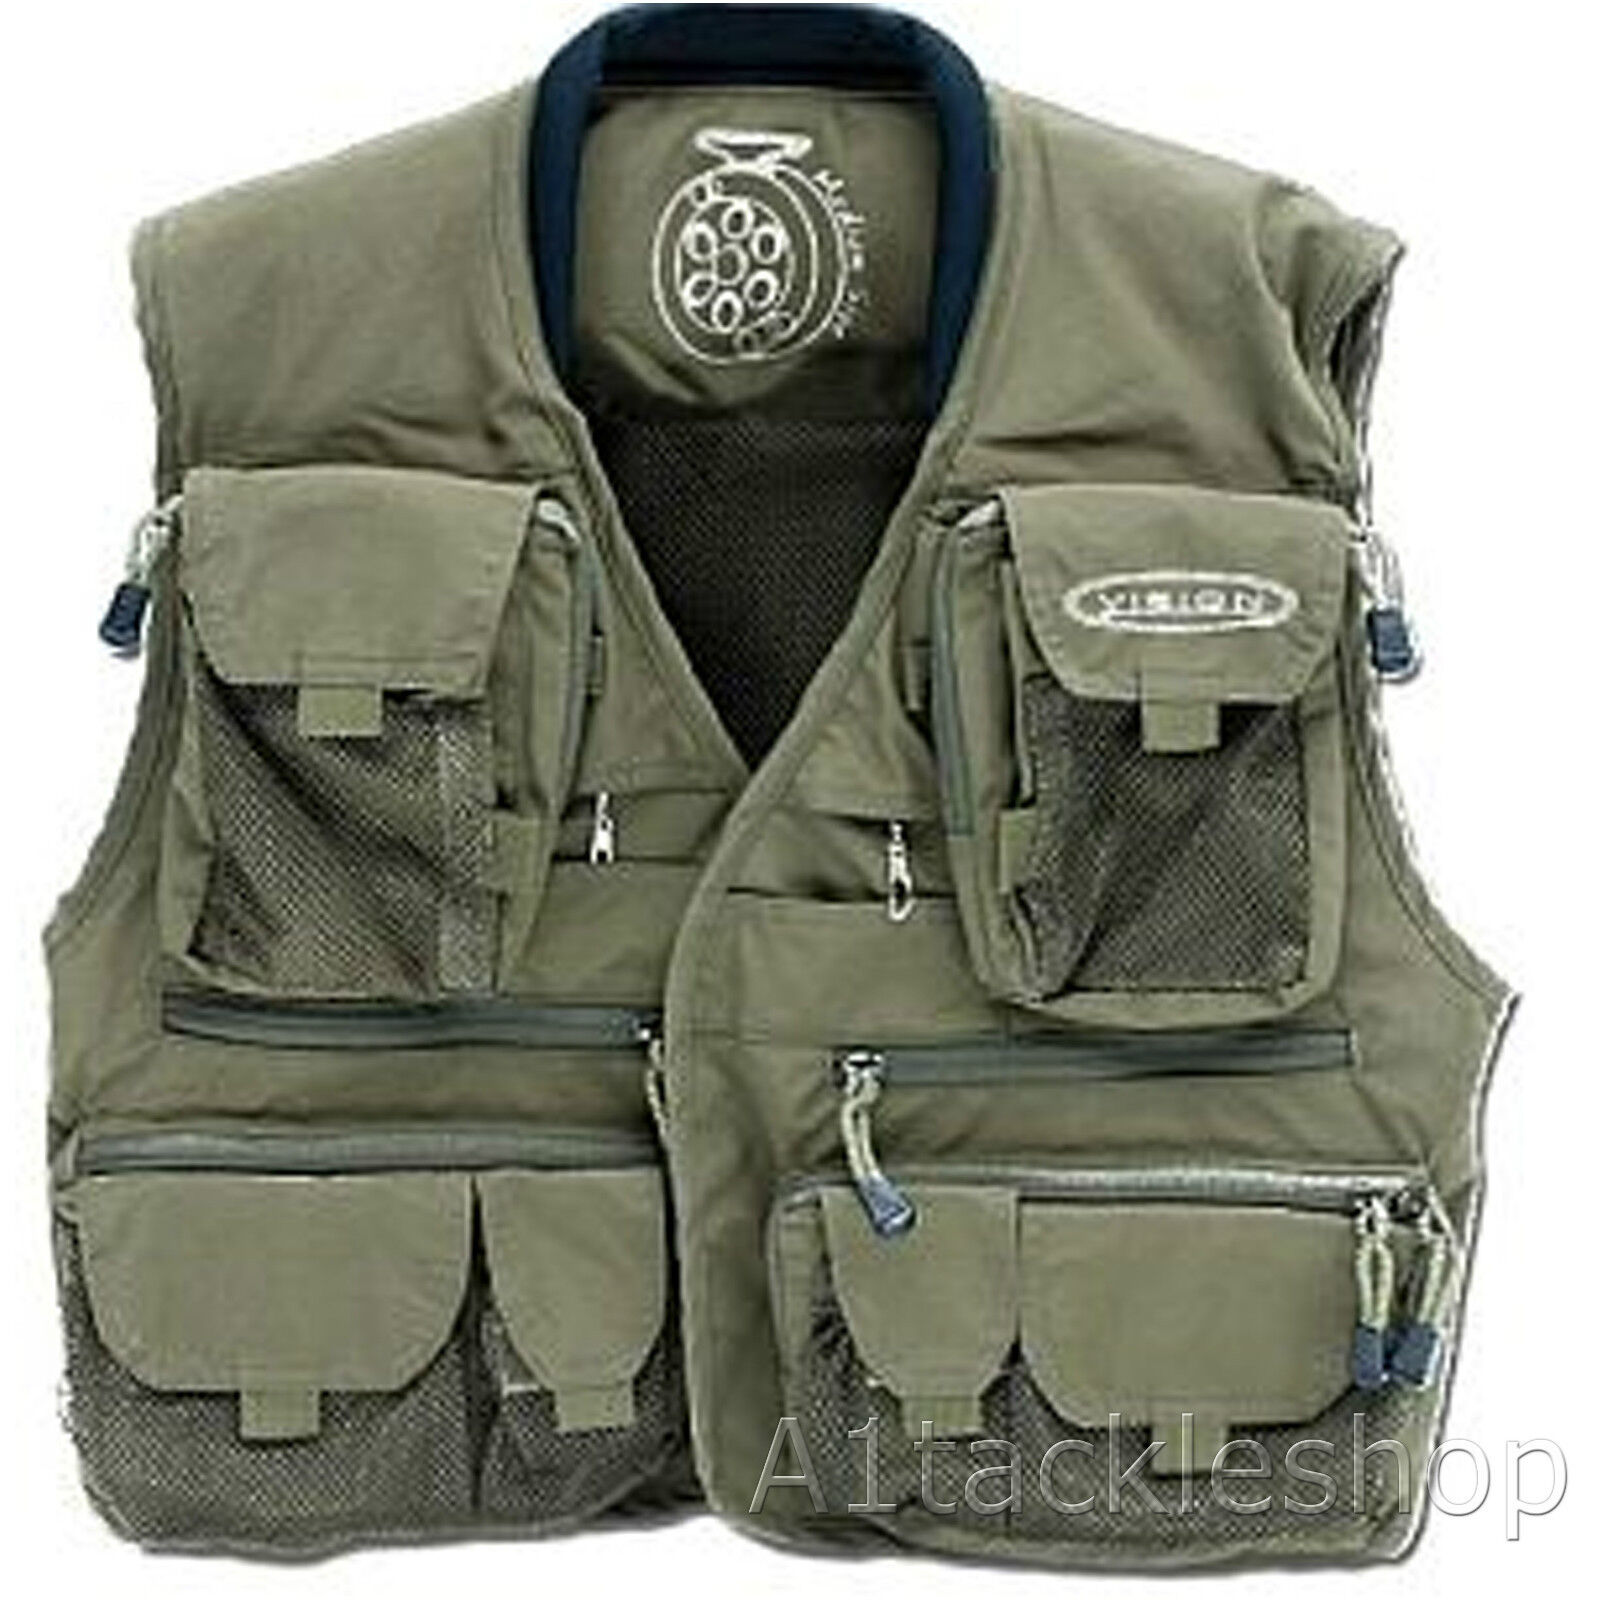 Vision Caribou Fly Fishing Vest in Dark Olive